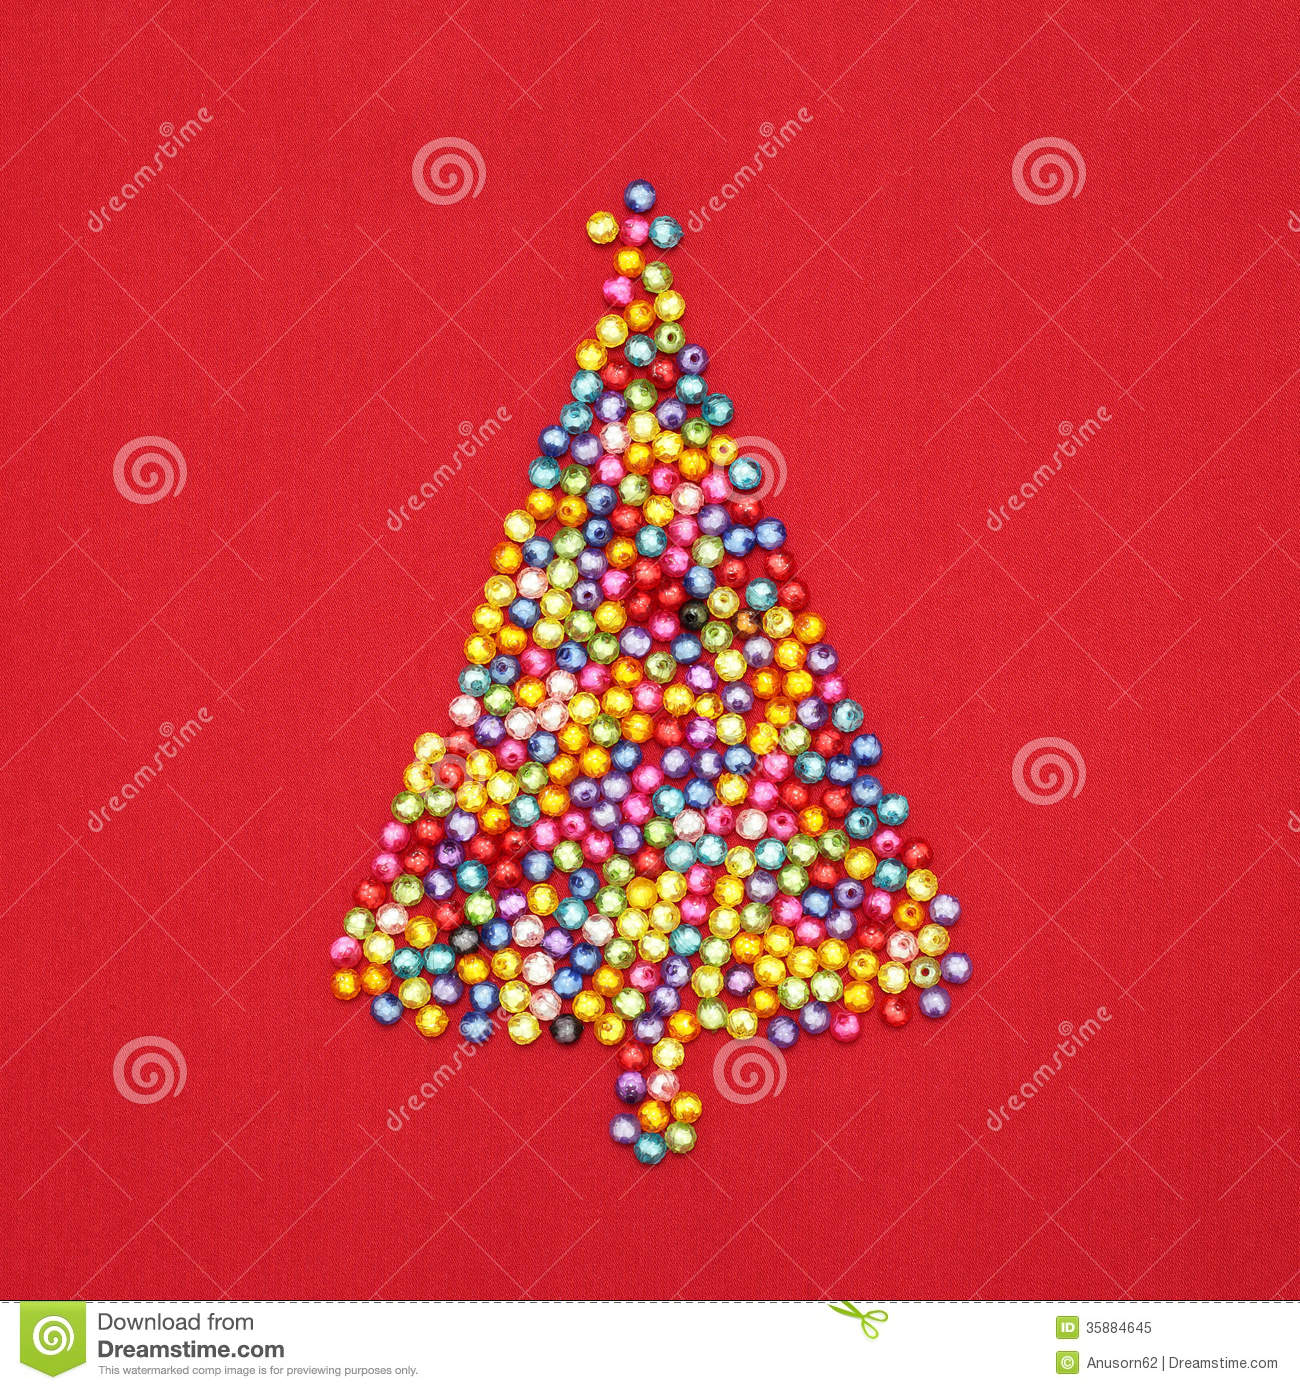 Decorate Christmas Tree With Beads: Christmas Tree Decorate By Colorful Beads On Red Royalty